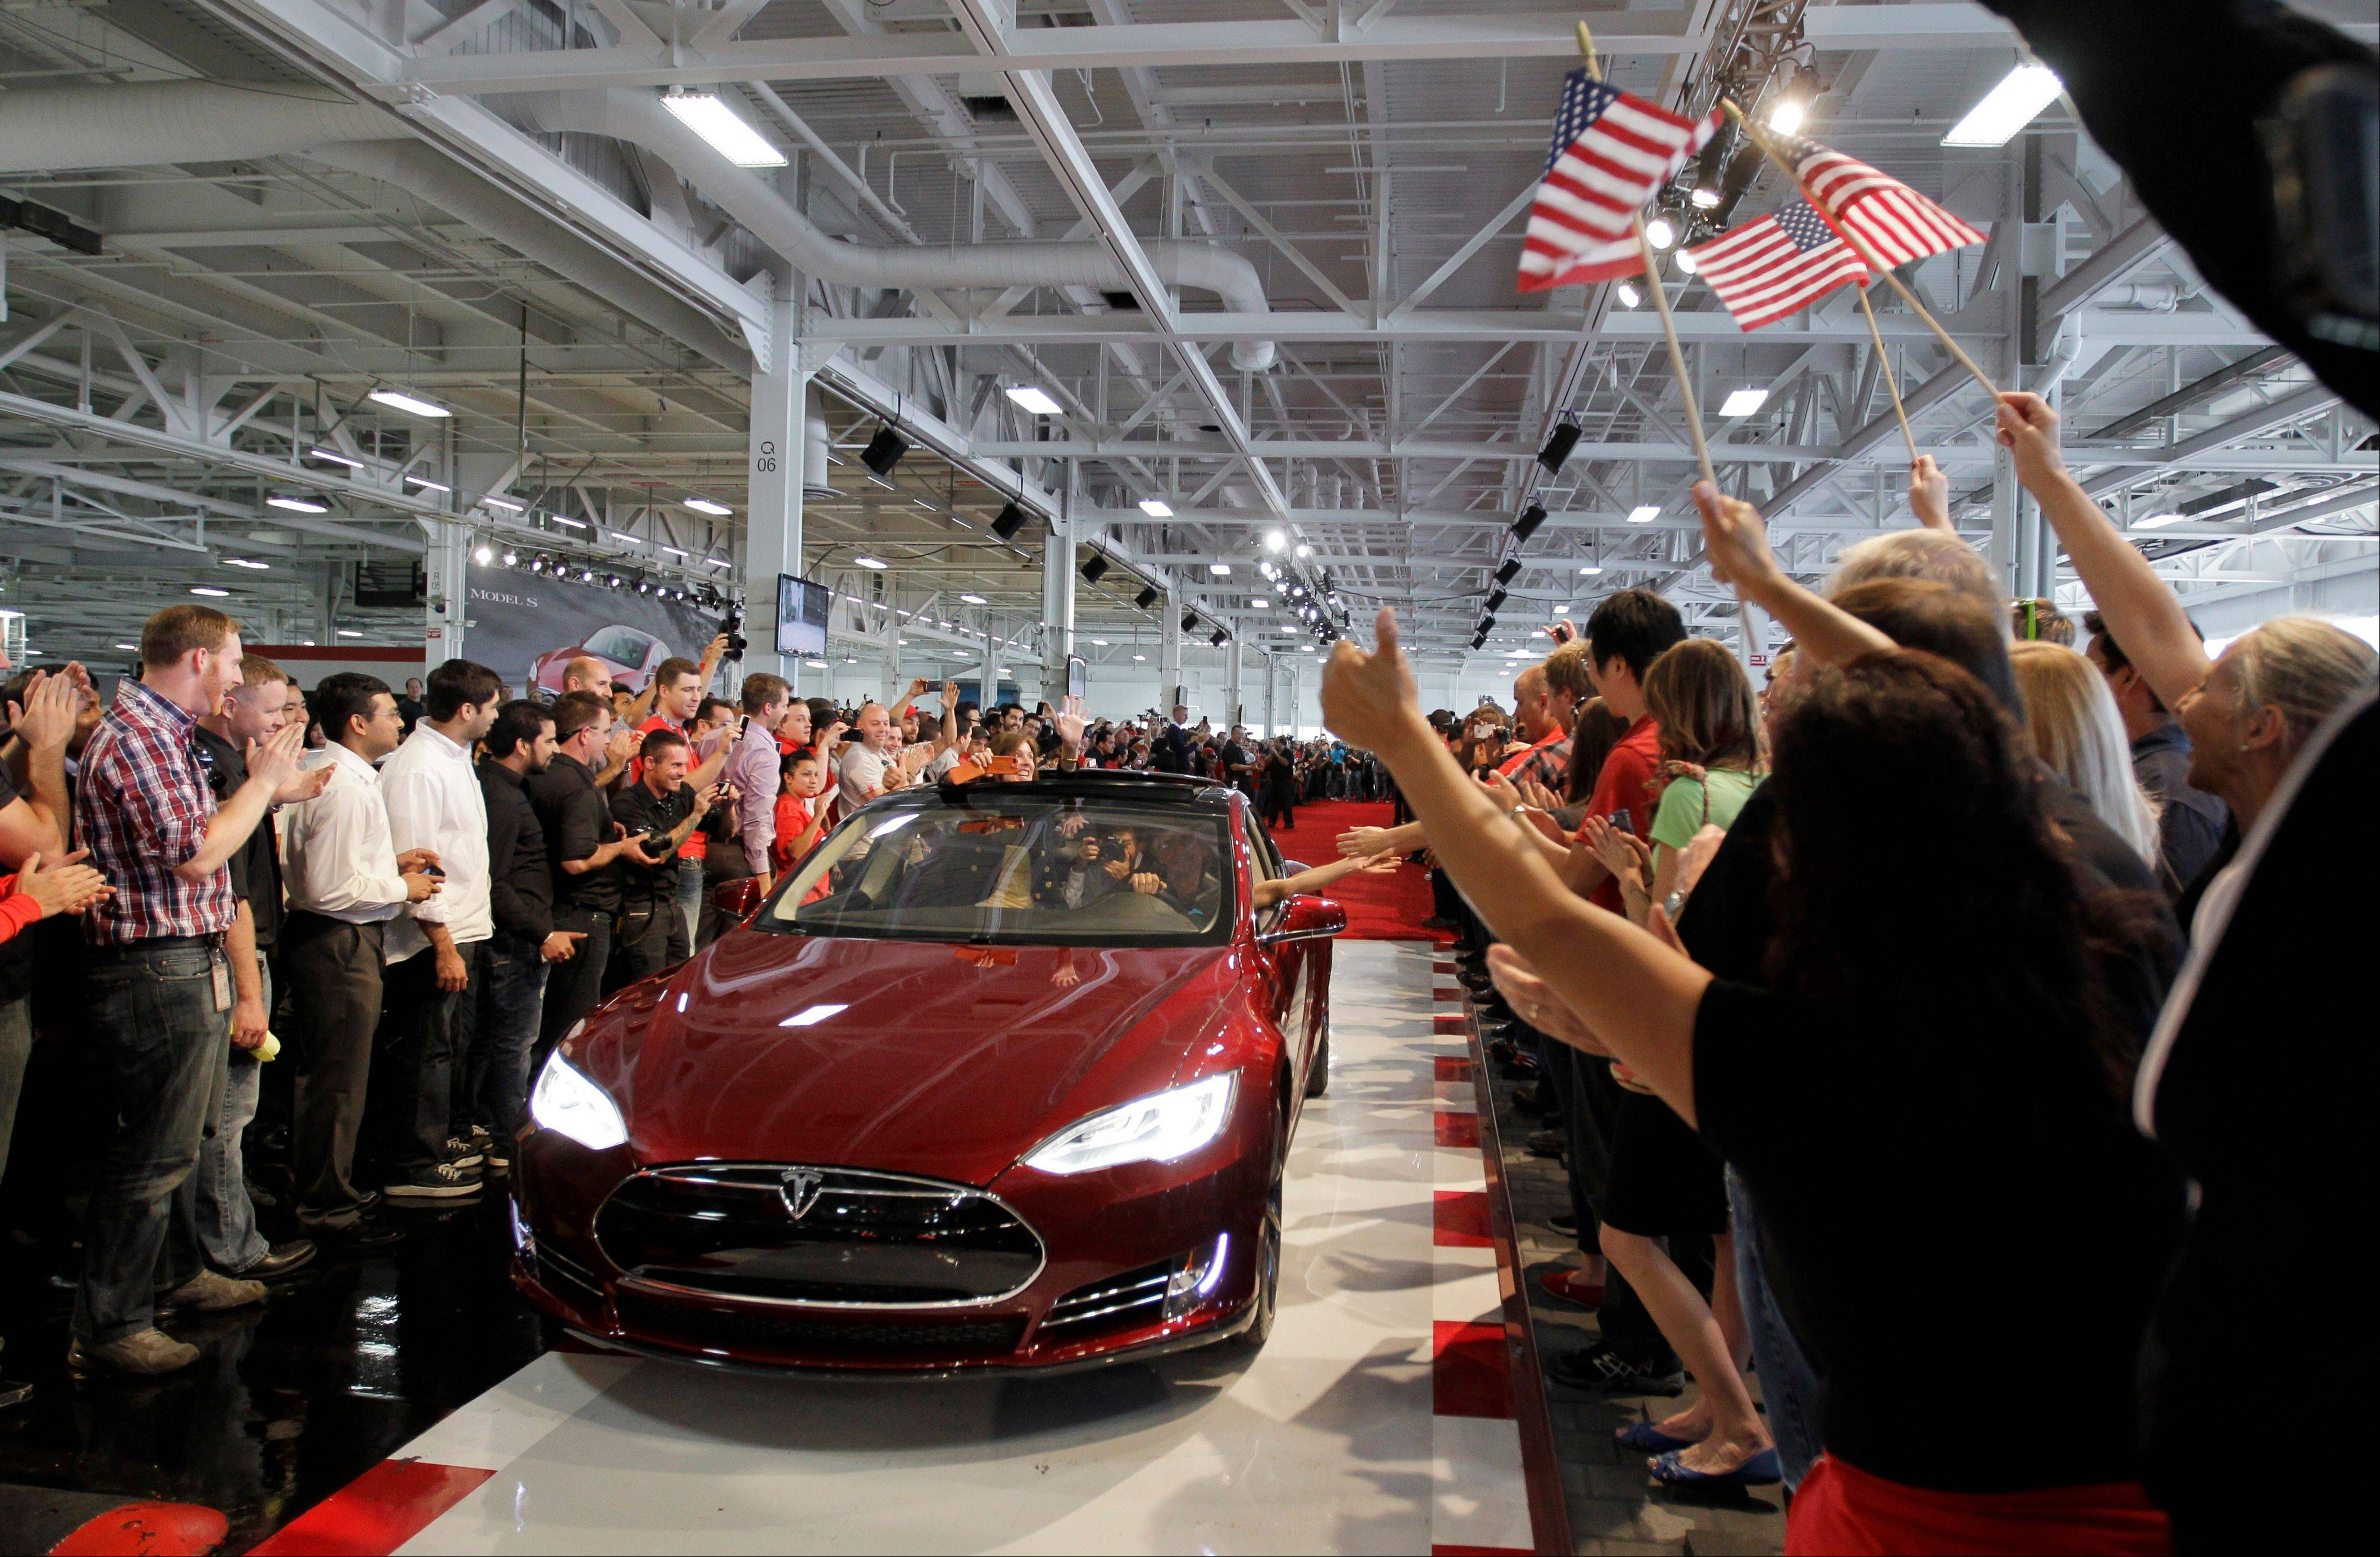 Tesla workers cheer on the first Tesla Model S cars sold during a rally at the Tesla factory in Fremont, Calif., on June 22. The San Jose Mercury News� Troy Wolverton began his Model S review thusly: �I am now a member of a select club: I�m one of the very few who has driven Tesla�s new all-electric Model S luxury sedan.�